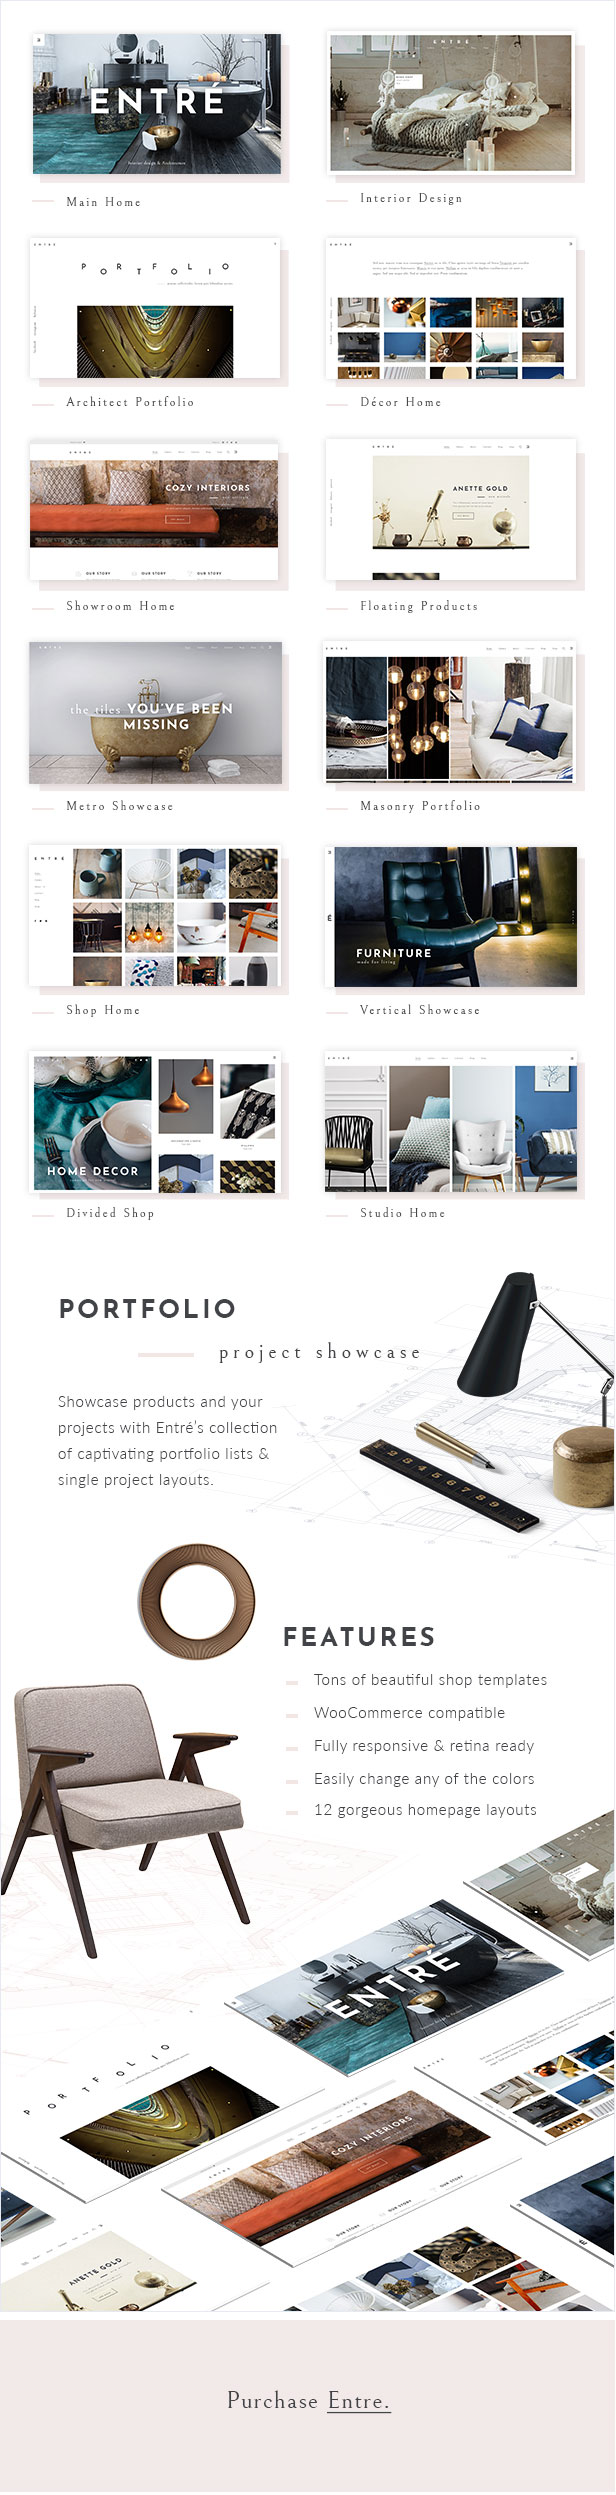 Meet Entré, Elegant Interior Design And Décor WordPress Theme, Created To  Help You Set Up An Amazing Website With 0 Code Knowledge.